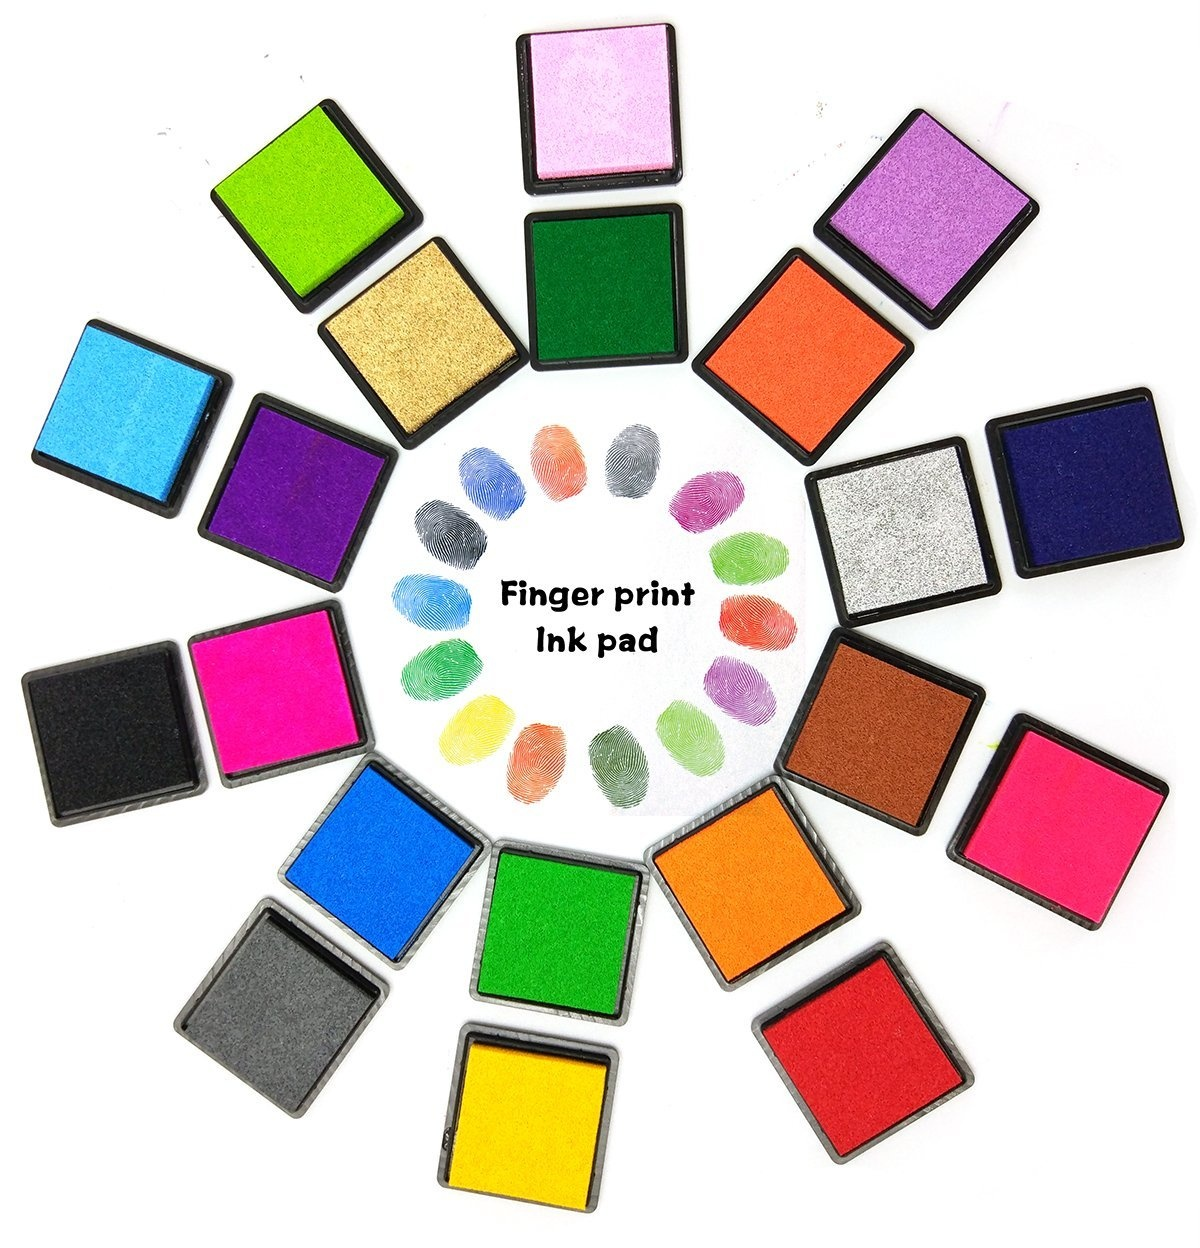 Finger Ink Pads for Kids CUTICATE 6 Colors Ink Stamp Pads Finger Drawing Paining Toy Washable Craft Stamp Pad